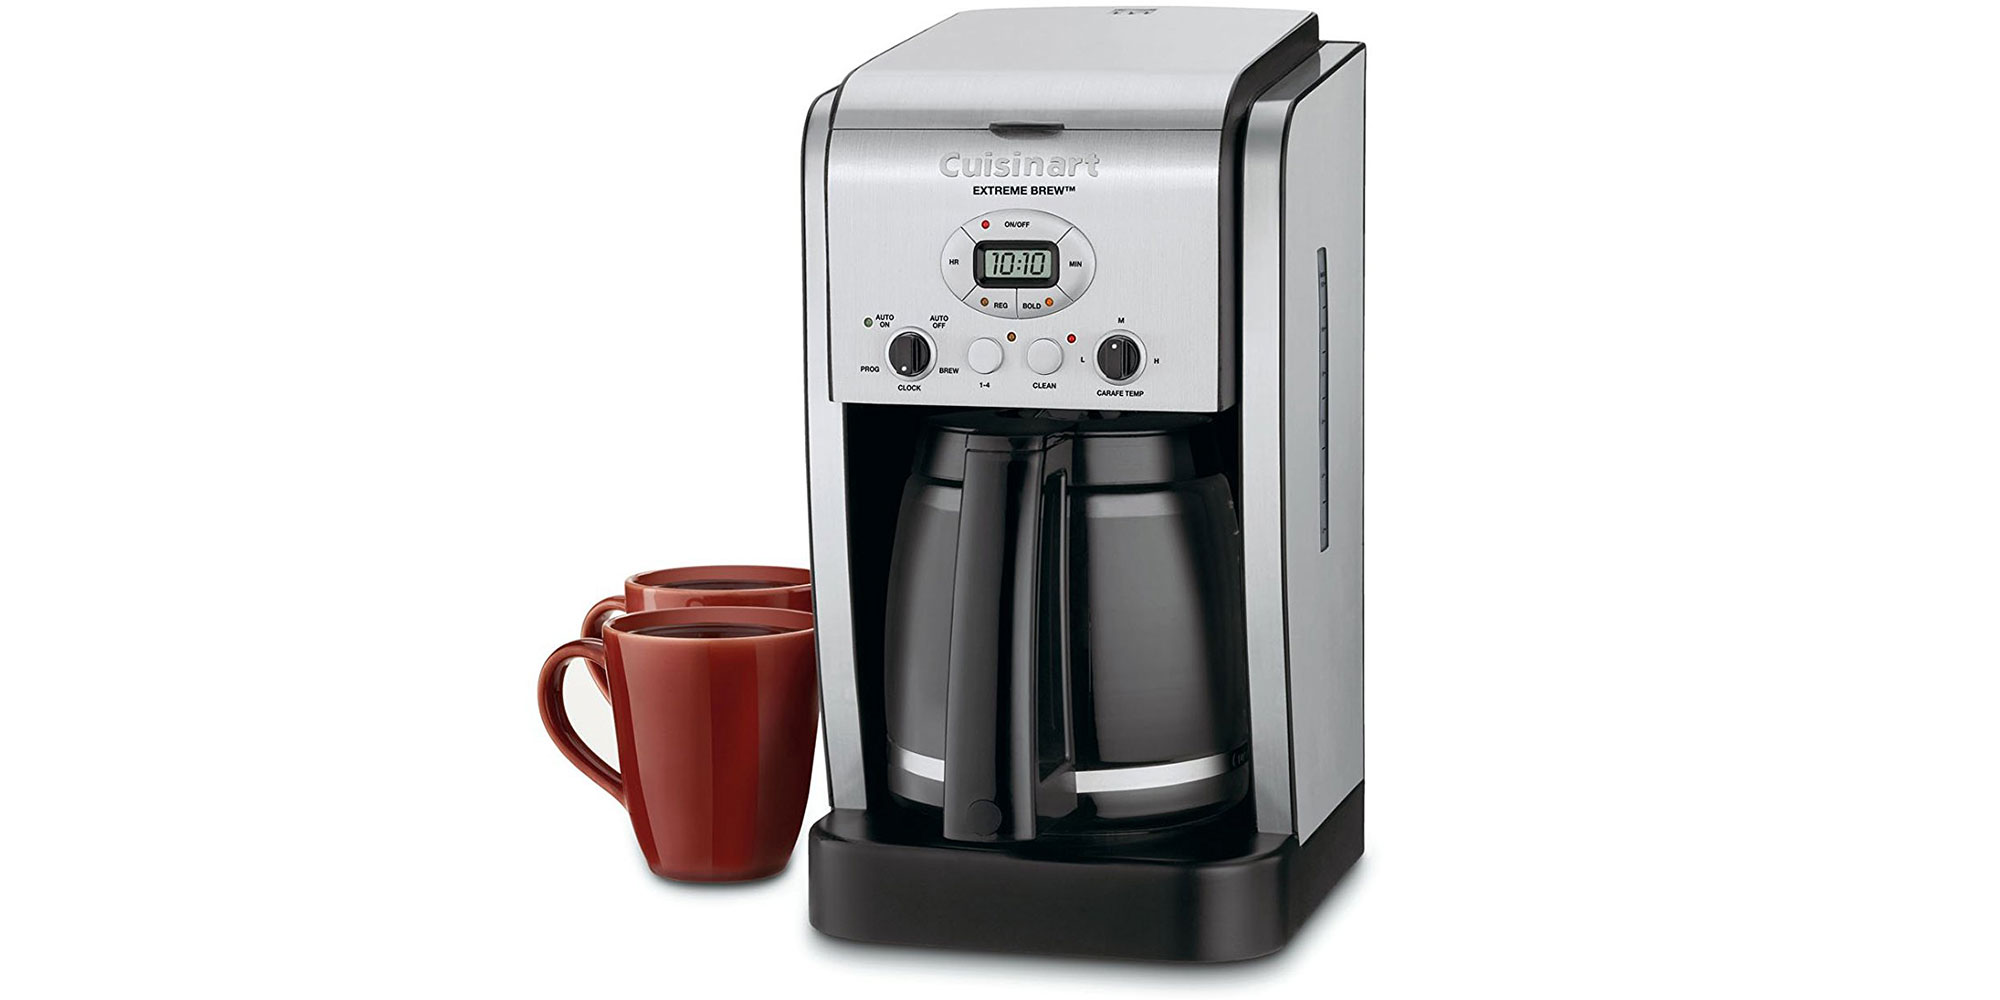 Brew coffee in no time w/ this Cuisinart Extreme 12 cup coffee maker: $35